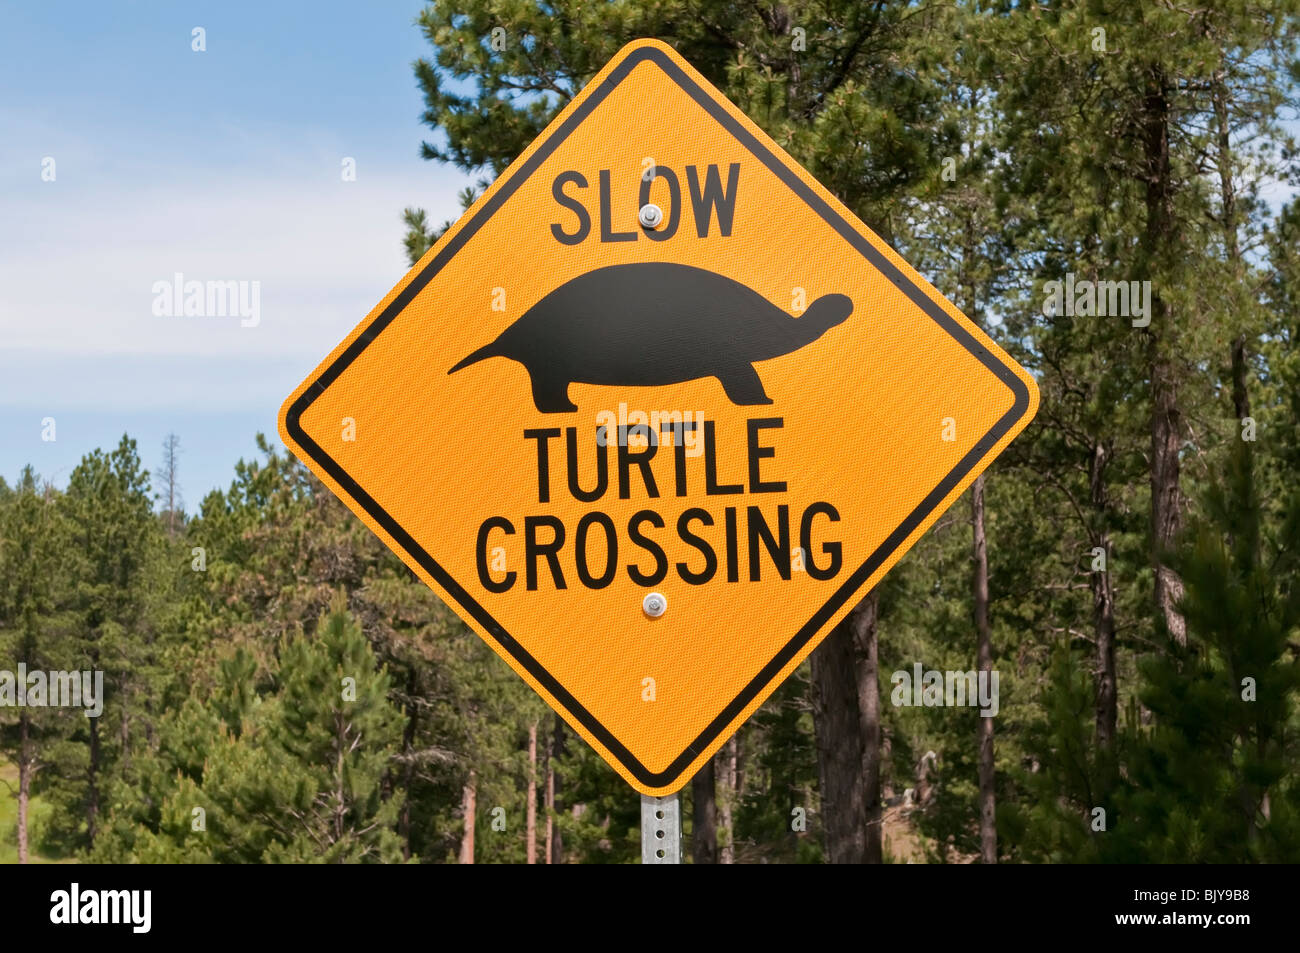 Slow Turtle Crossing >> Turtle Crossing Sign Stock Photos Turtle Crossing Sign Stock